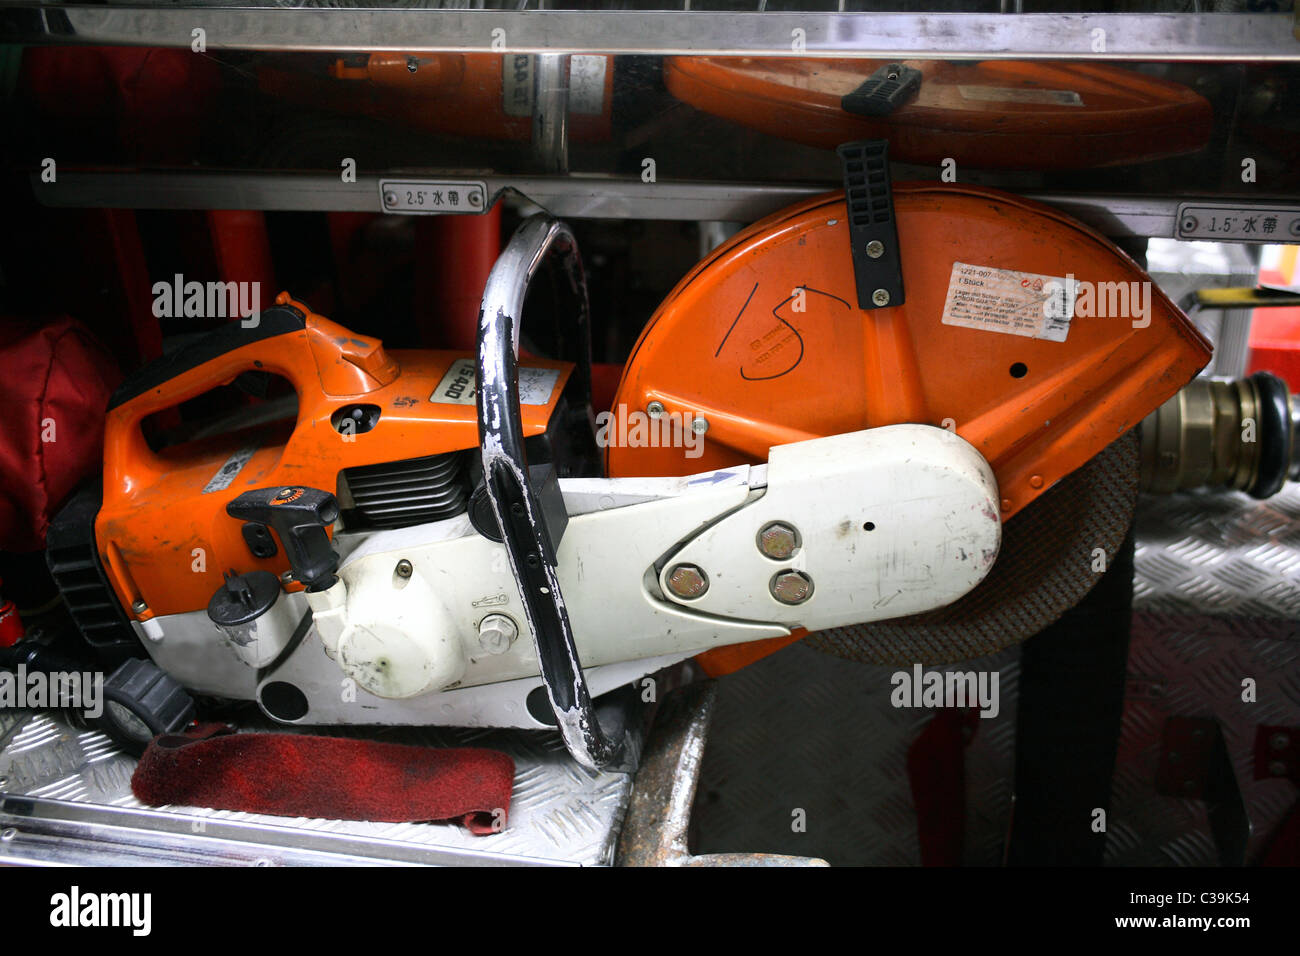 Fire electric saw - Stock Image